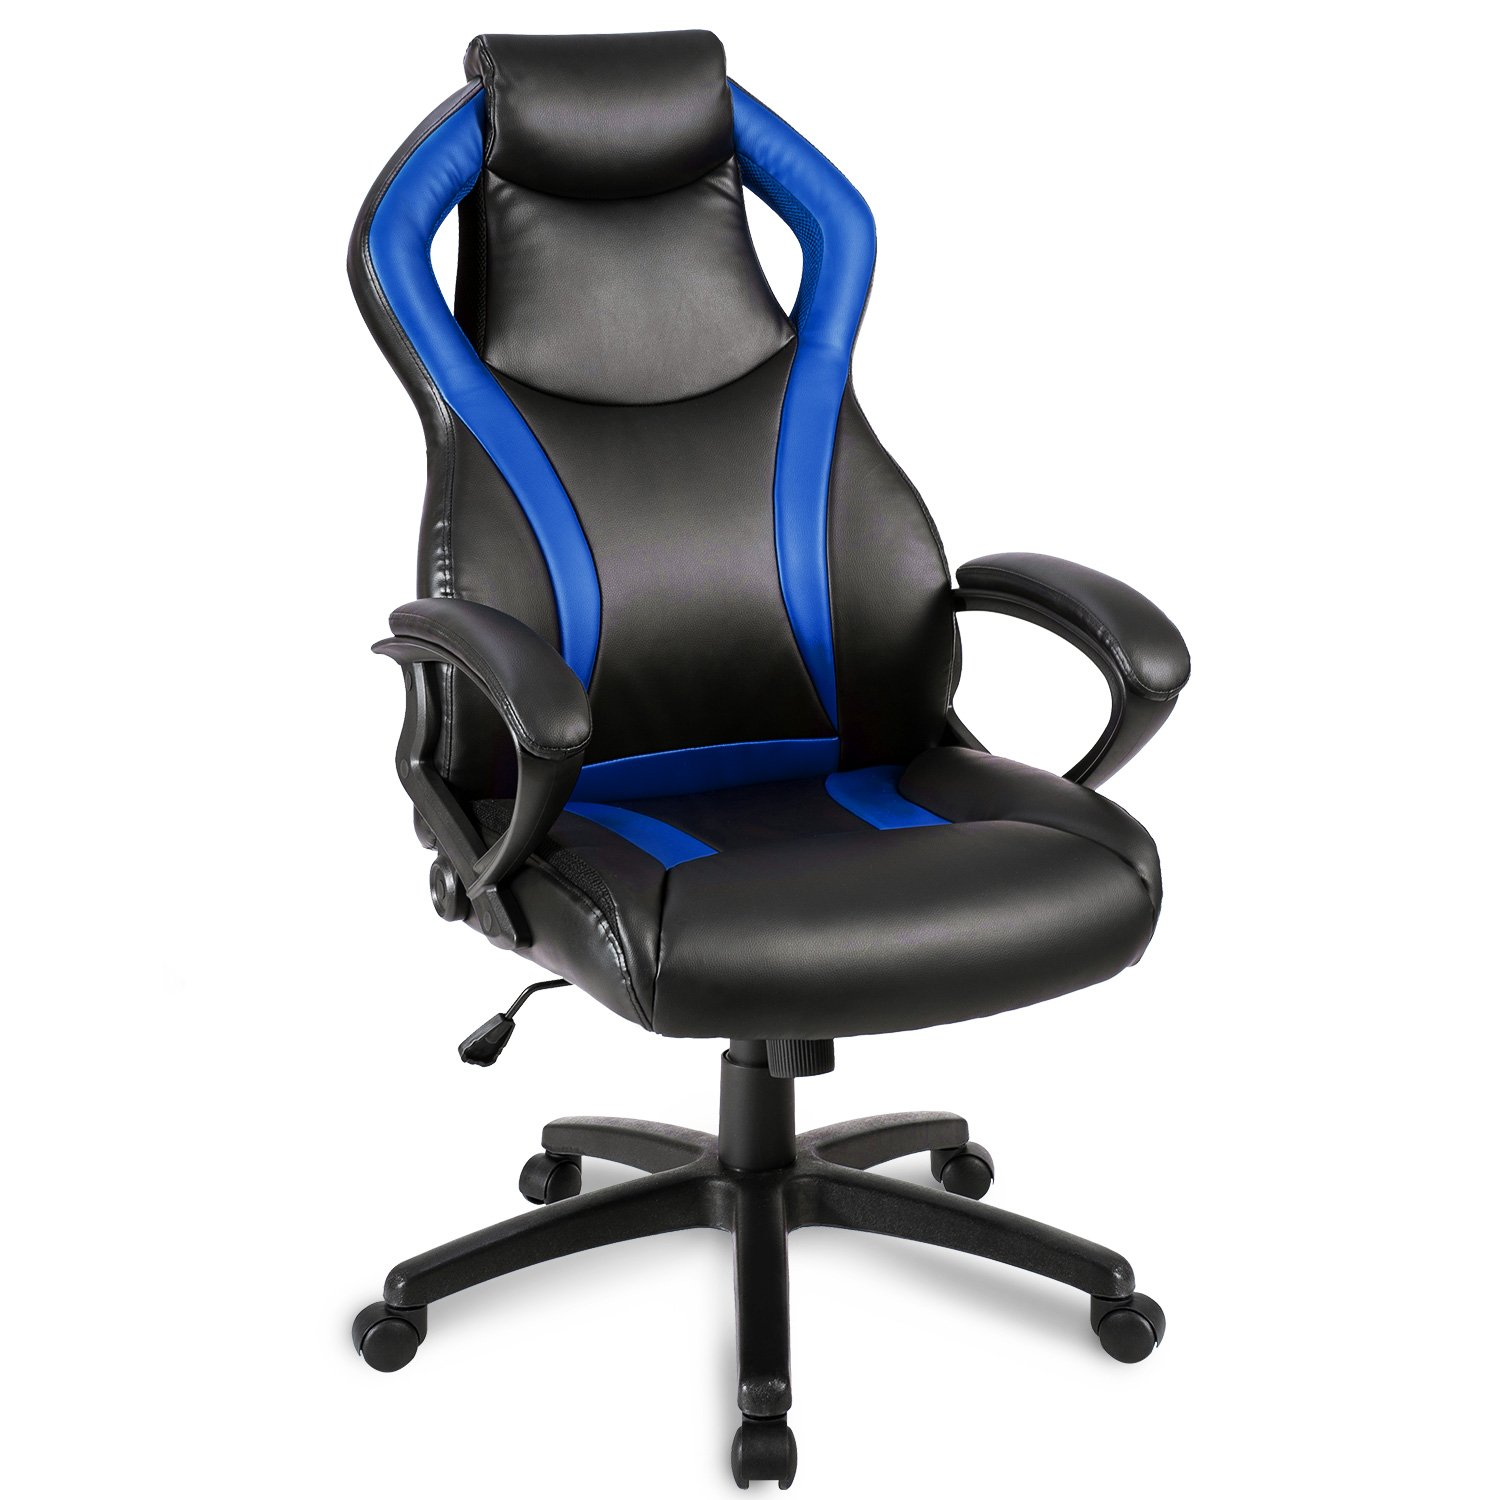 Merax Racing Style Leather Gaming Chair Office Desk Chair Pu Leather Swivel Computer Chair (Blue)